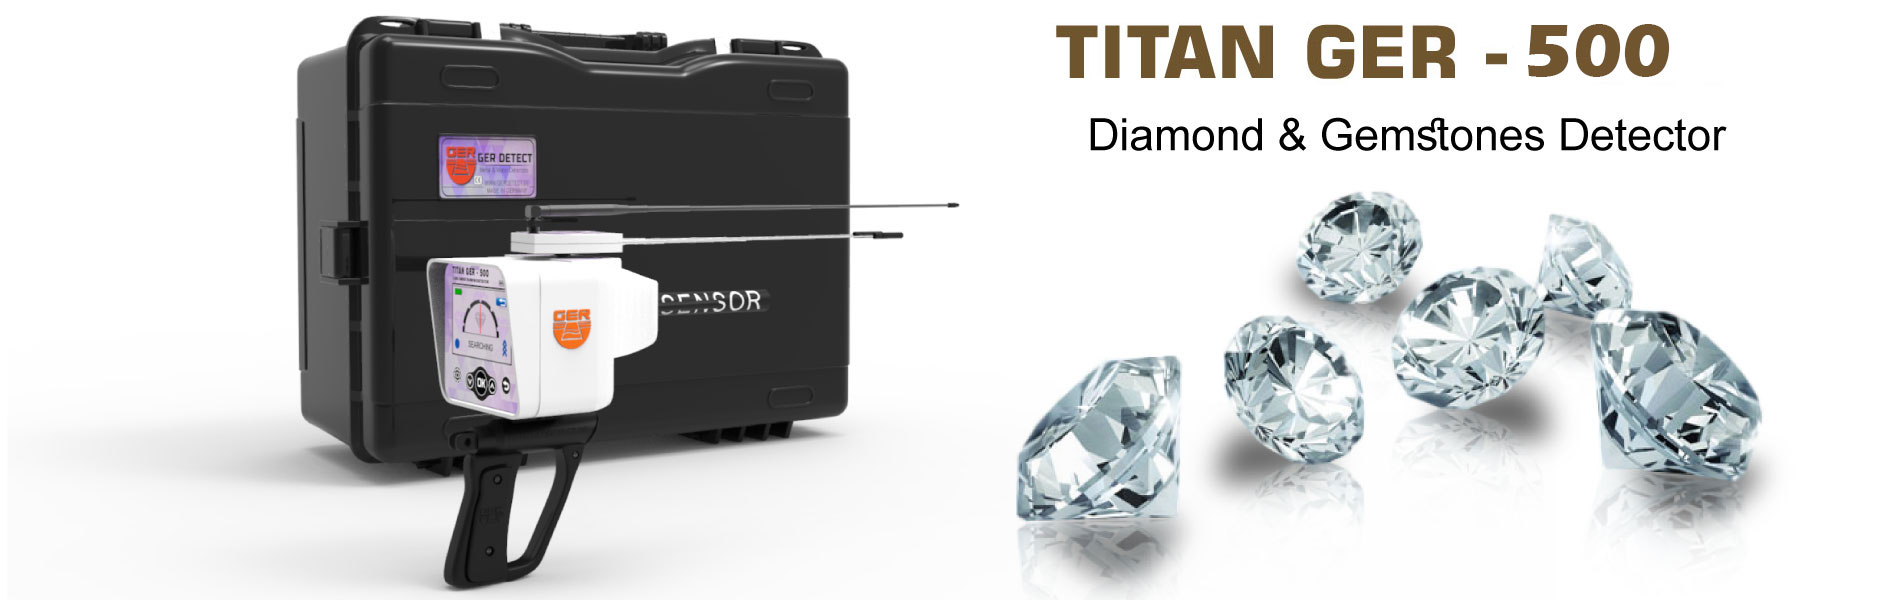 titan-ger-500-device-diamond-gemstone-locator